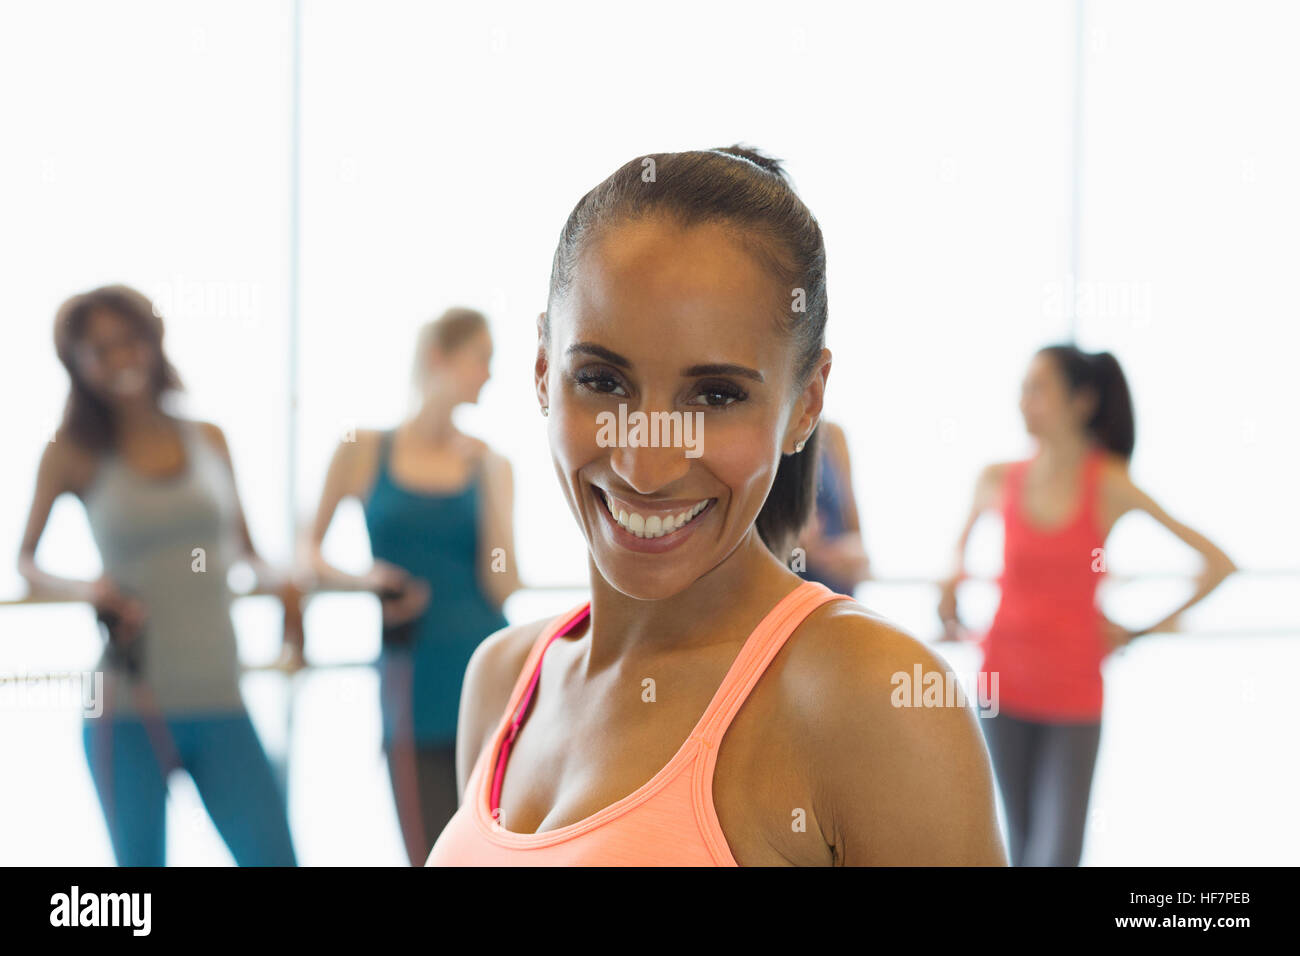 Portrait smiling woman in exercise class gym studio - Stock Image